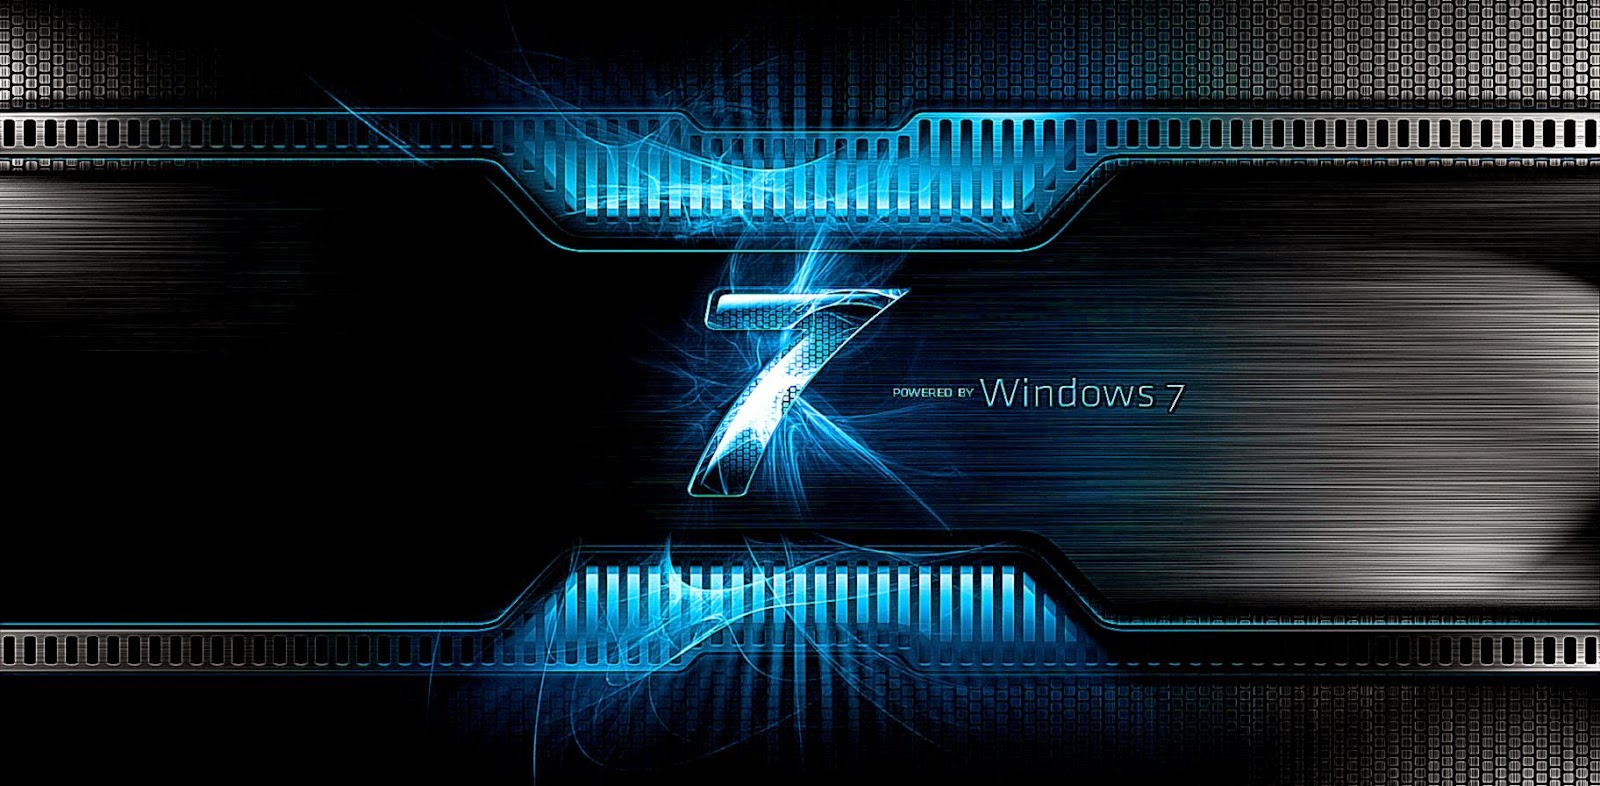 57 Free Hd Windows 7 Wallpapers For Download Best Technology Cover Photos For Facebook 1600x786 Download Hd Wallpaper Wallpapertip